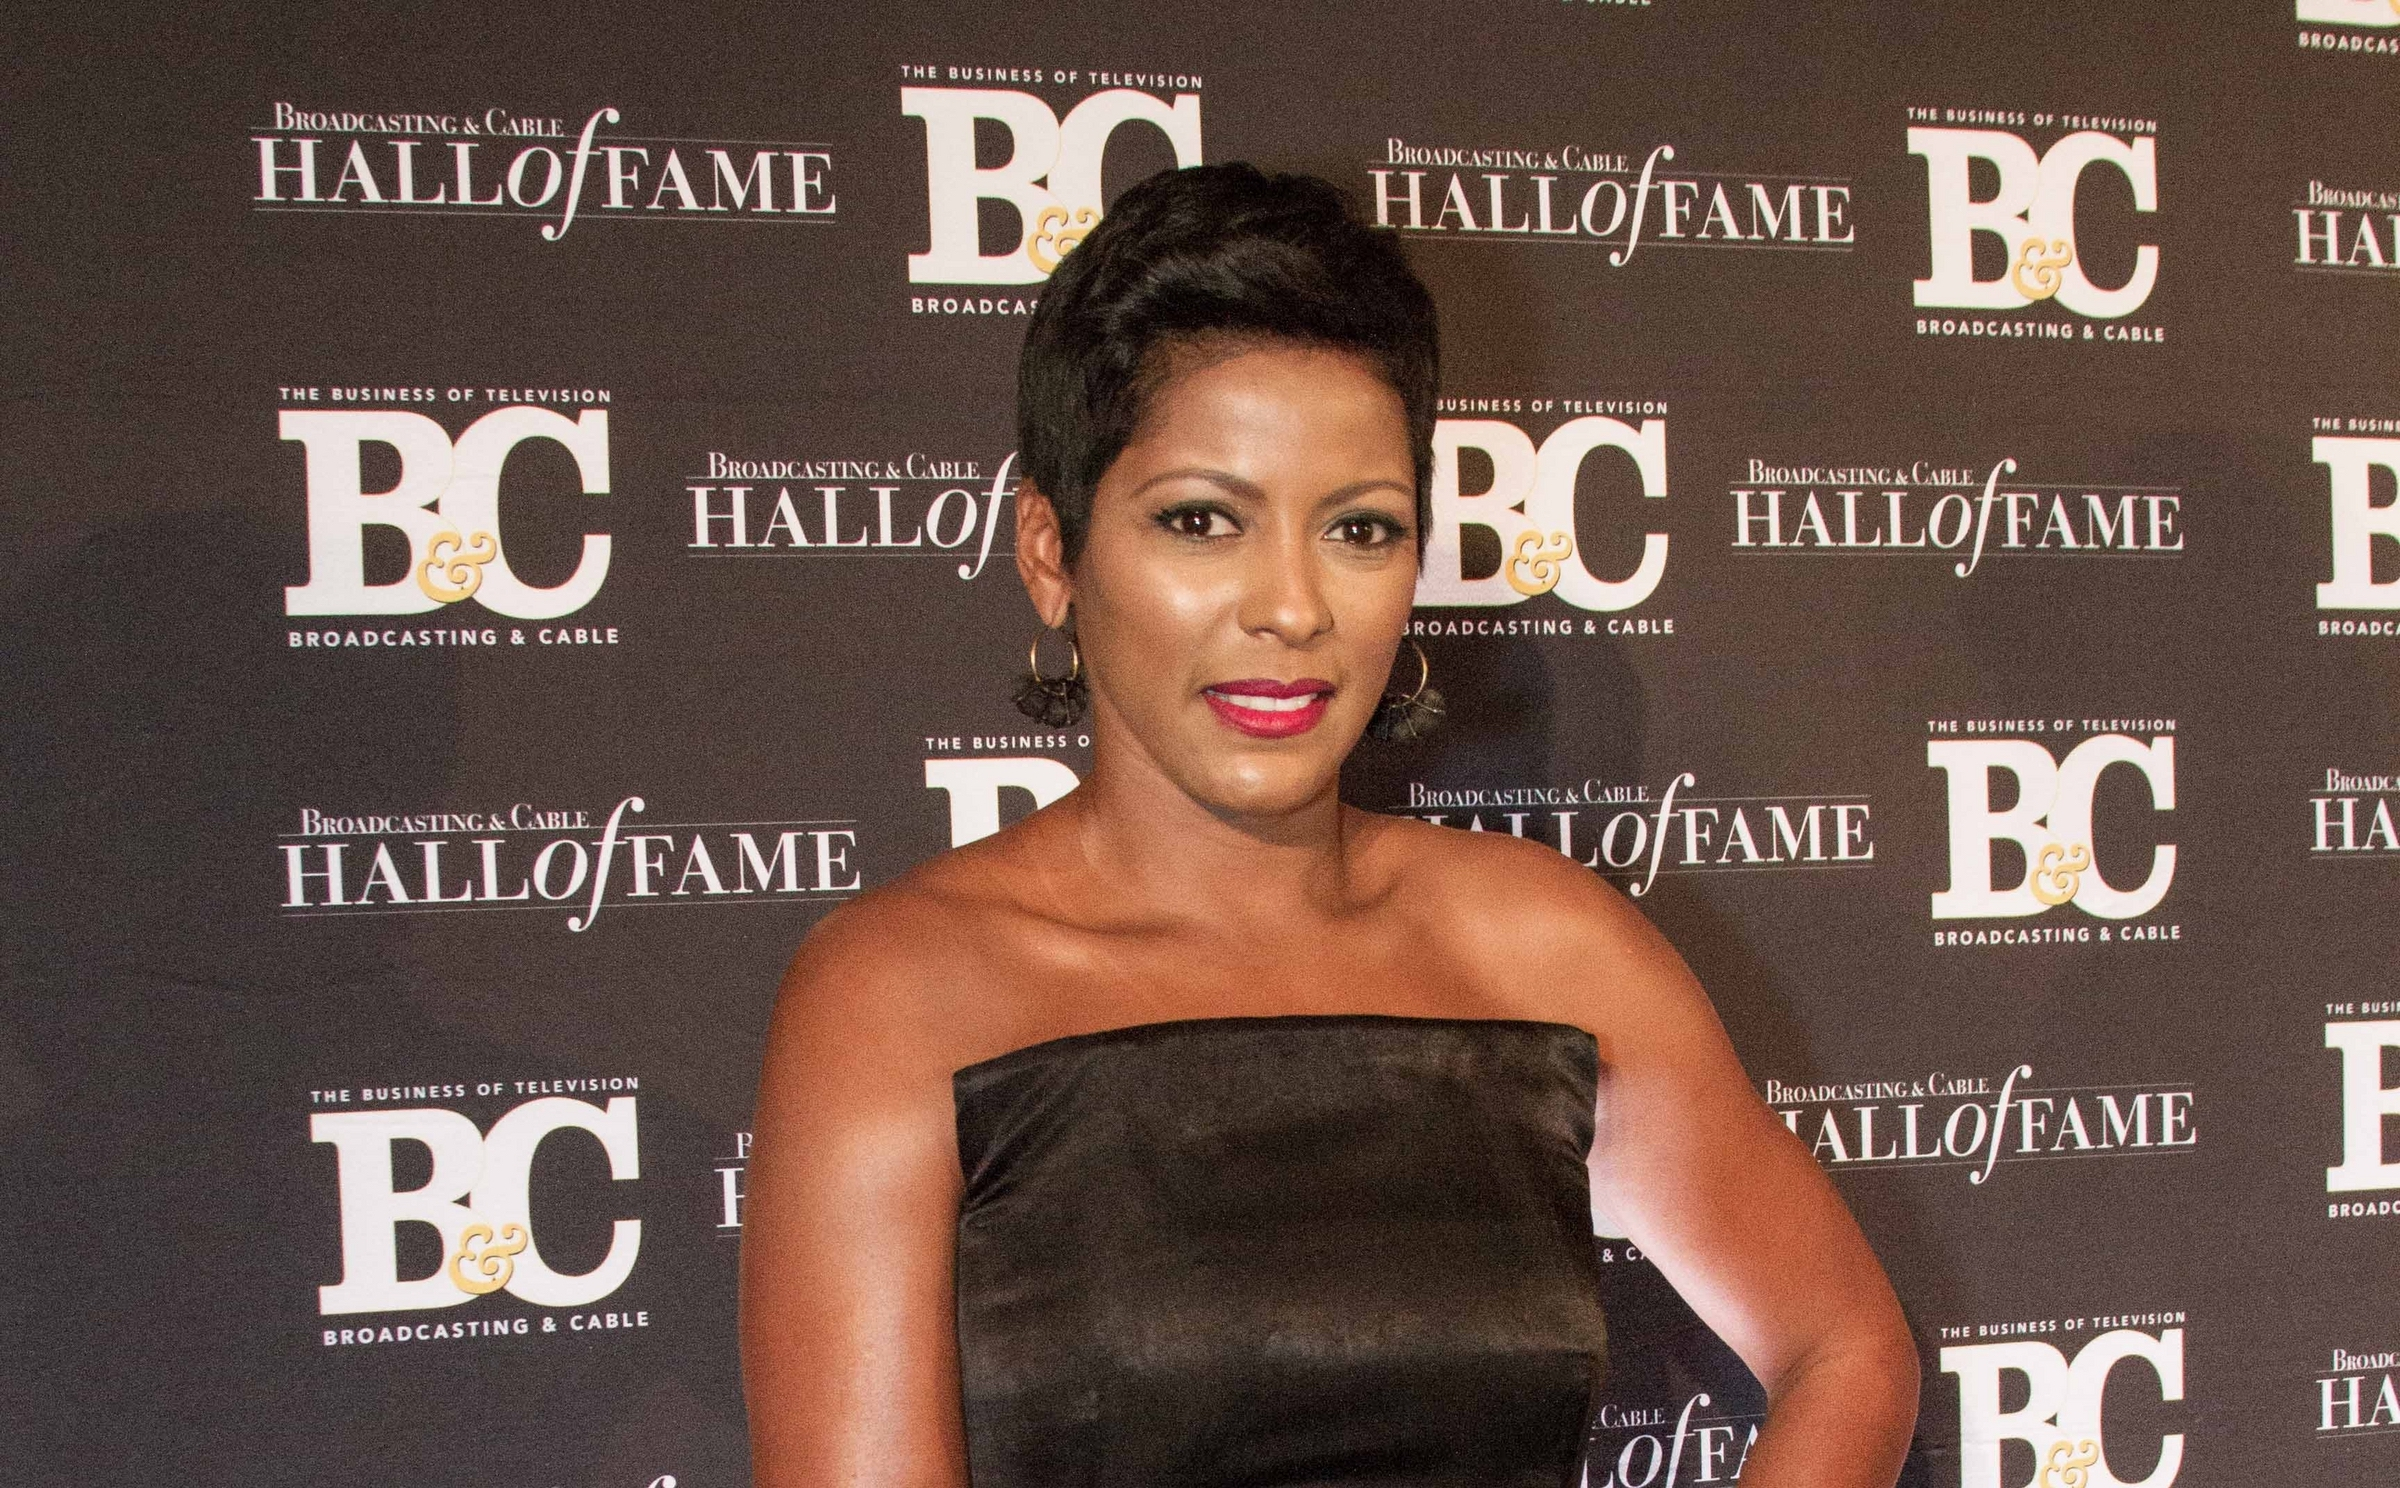 10/20/2015 - Tamron Hall - Broadcasting and Cable Hall of Fame 25th Anniversary Gala - Arrivals - Waldorf Astoria New York Hotel, 301 Park Avenue - New York City, NY, USA - Keywords: Vertical, Radio, Award, TV Show, Television Show, Photography, Portrait, Arts Culture and Entertainment, Arrival, Attending, Celebrities, Celebrity, Person, People Orientation: Portrait Face Count: 1 - False - Photo Credit: Lisa Holte / PRPhotos.com - Contact (1-866-551-7827) - Portrait Face Count: 1